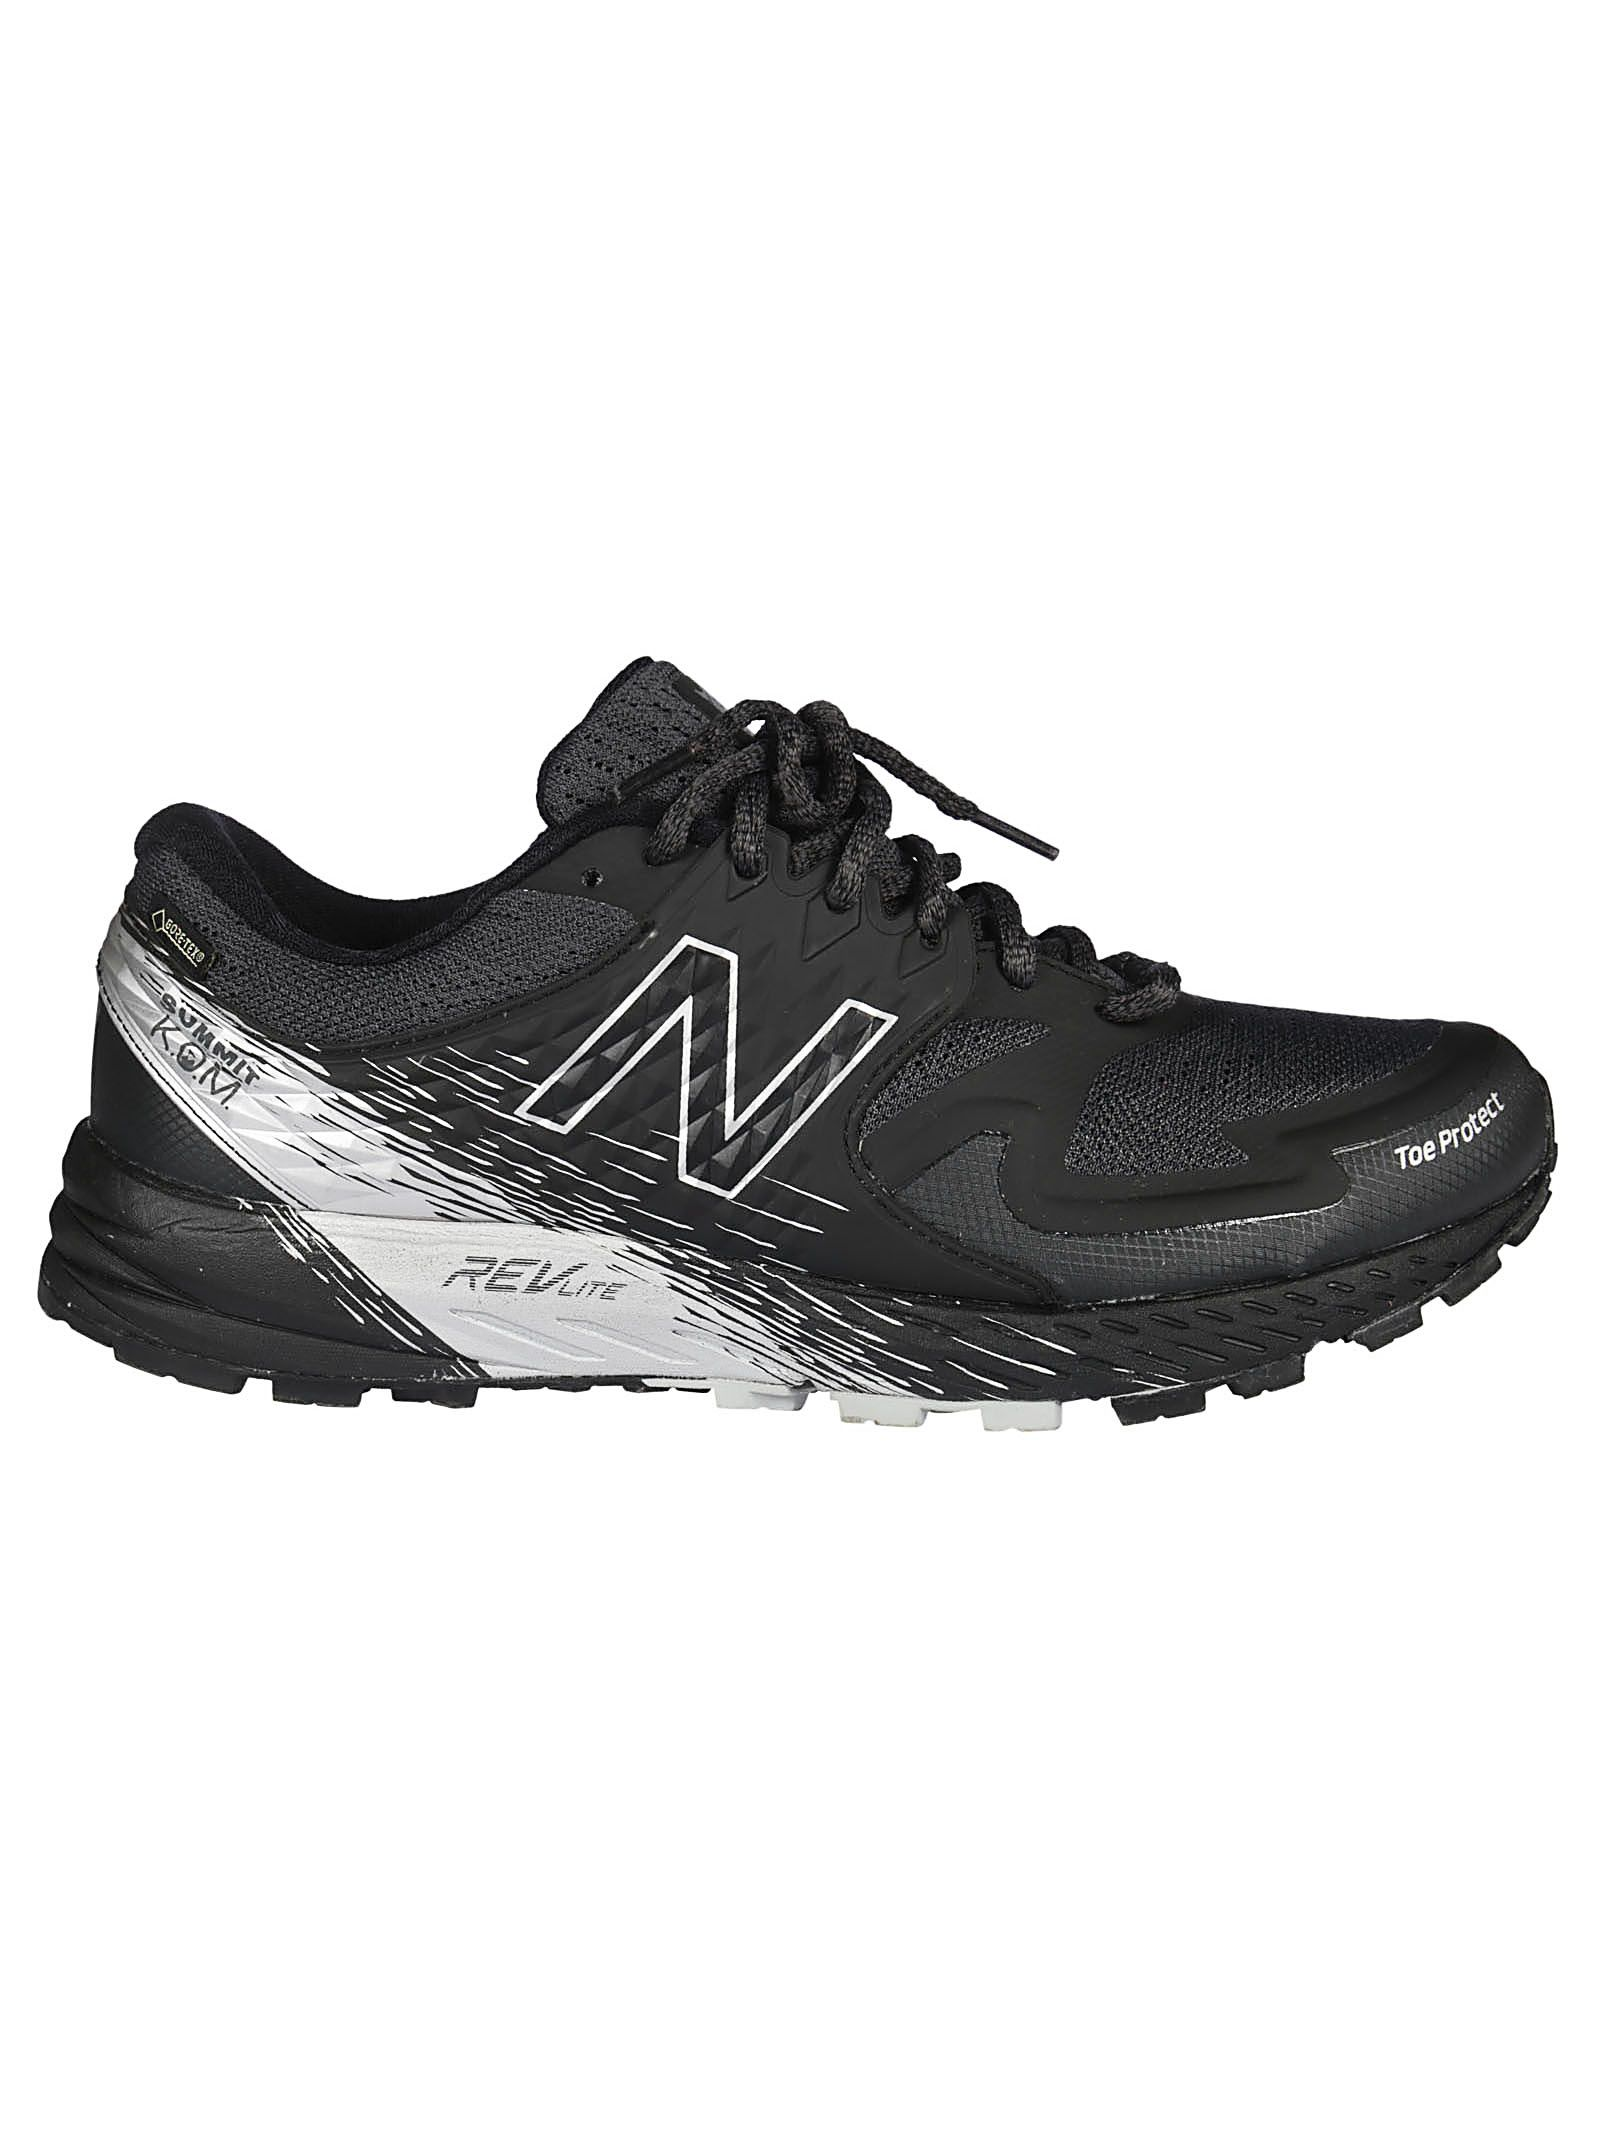 New Balance Trail Gore-tex Sneakers